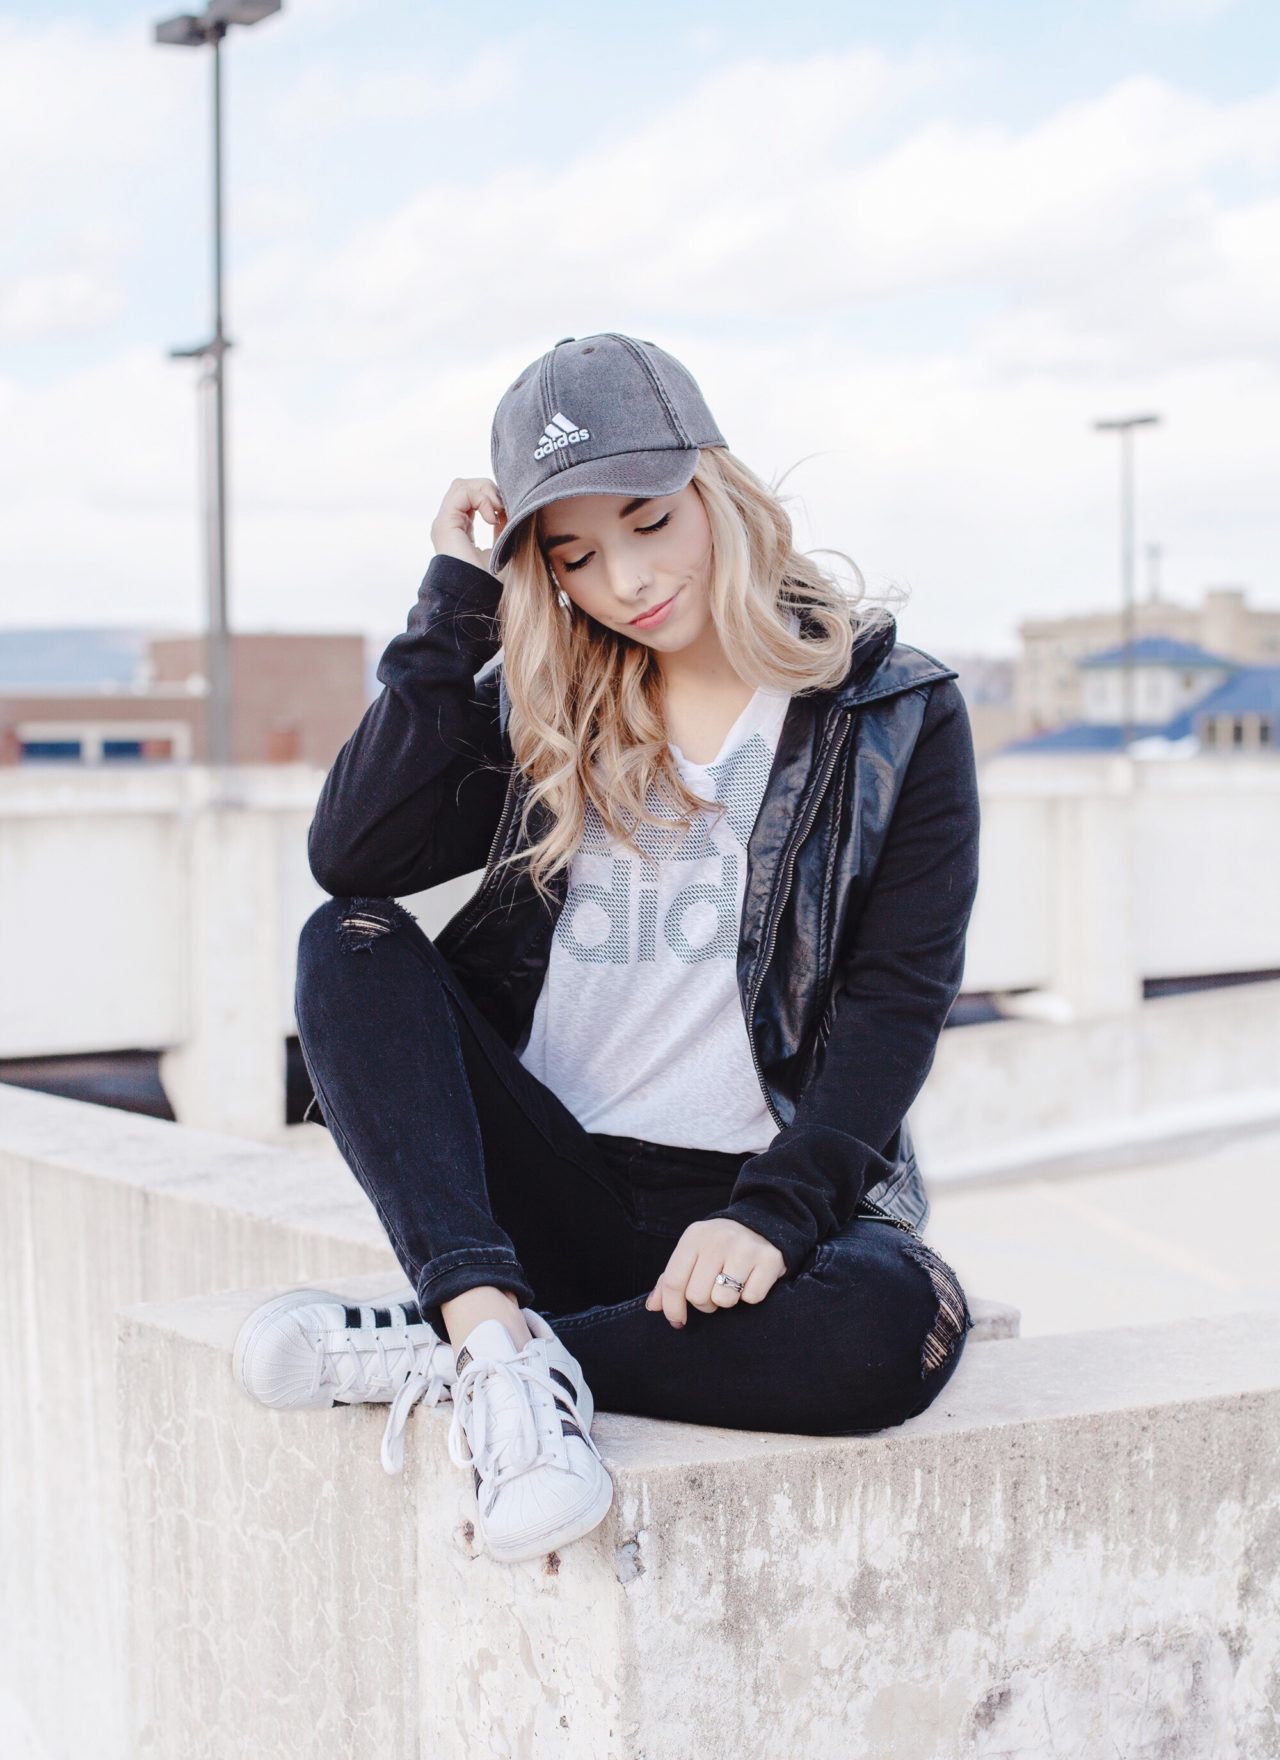 Edgy Street Style With Adidas